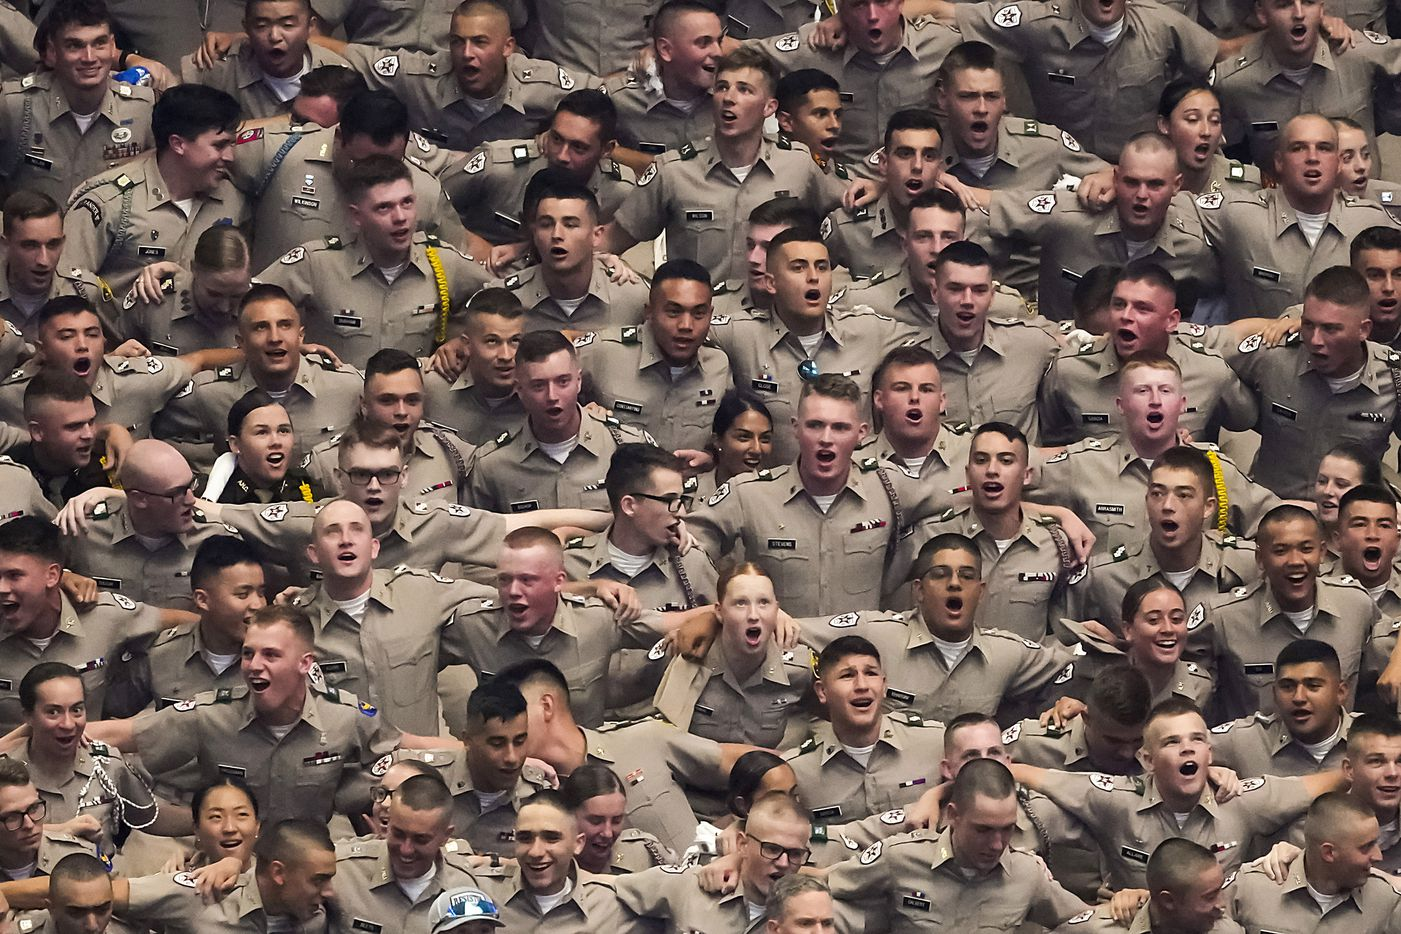 Members of the Texas A&M Corps of Cadets sing the Aggie War Hymn before an NCAA football game against Arkansas at AT&T Stadium on Saturday, Sept. 25, 2021, in Arlington.